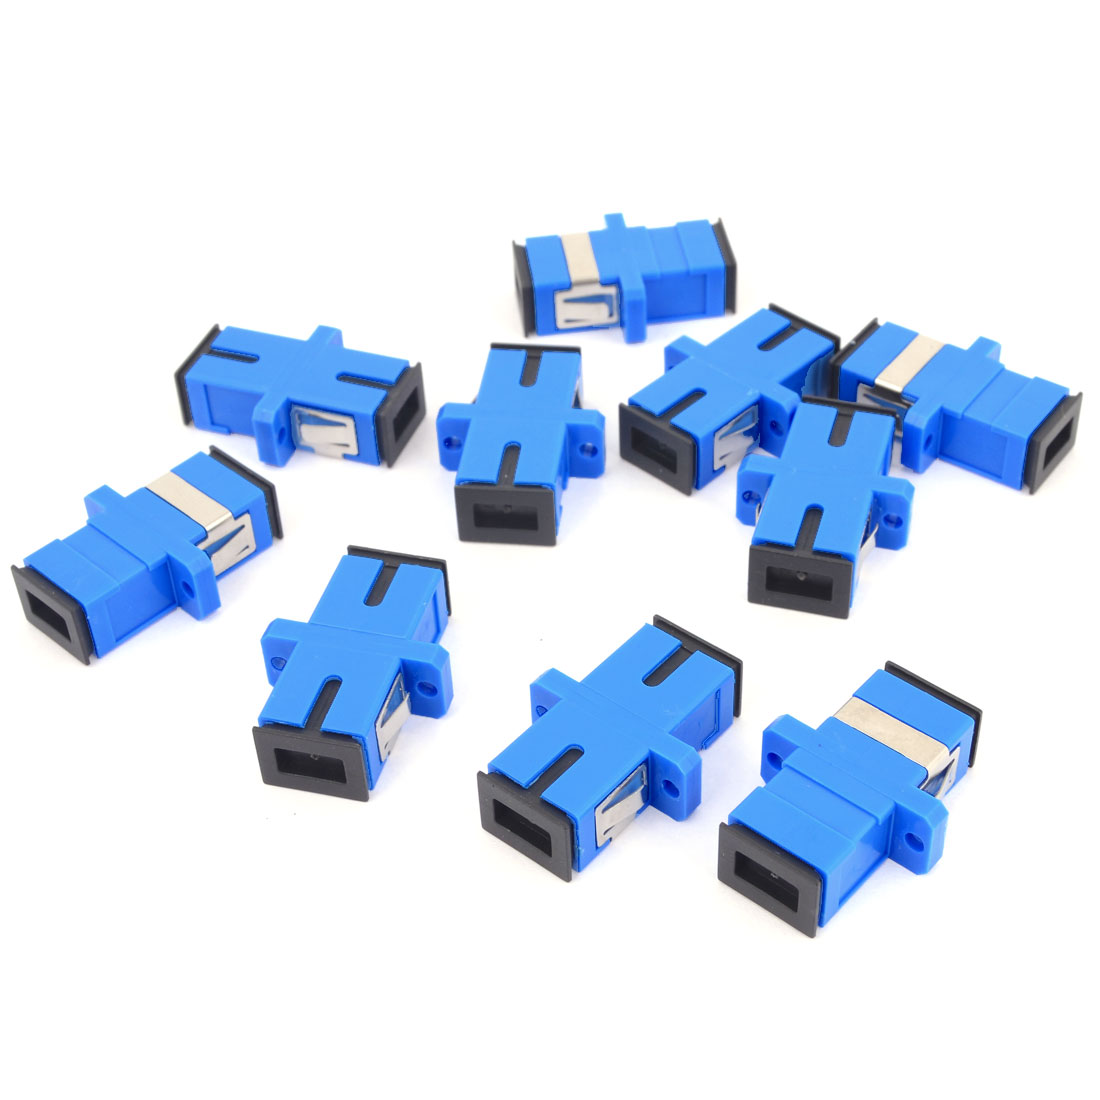 10 Pcs SC/SC Simplex Fiber Optic Flange Adapter Cable Connector